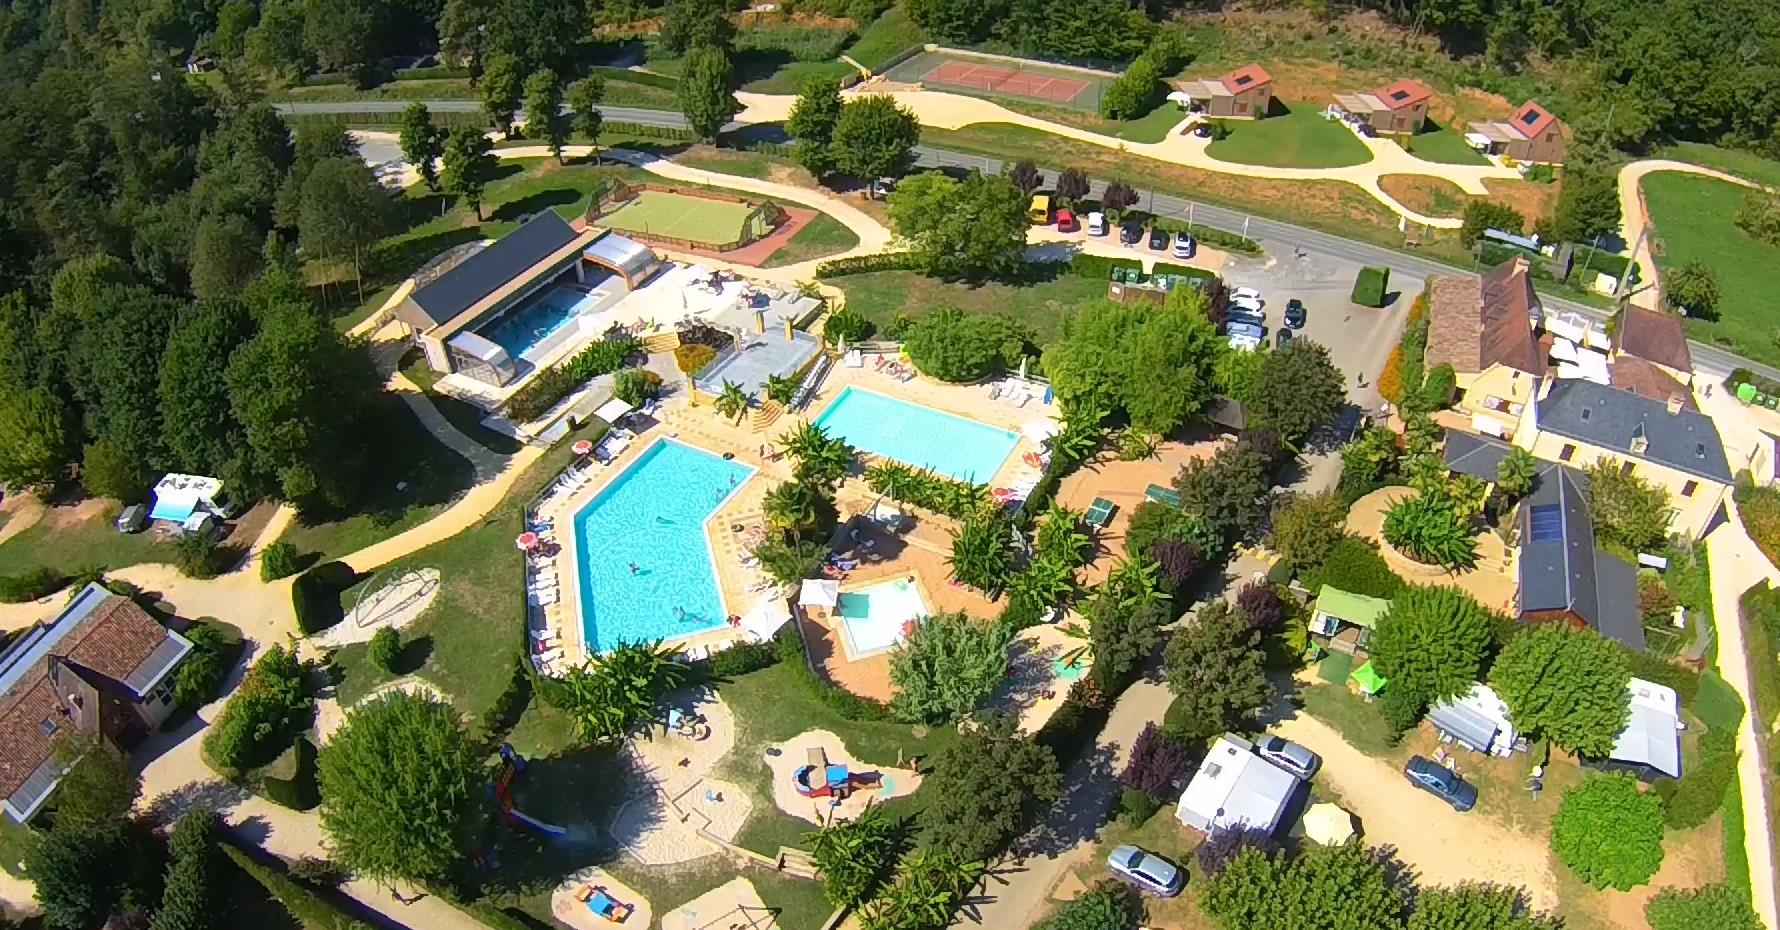 Establishment Camping Le Paradis - Saint Léon sur Vézère